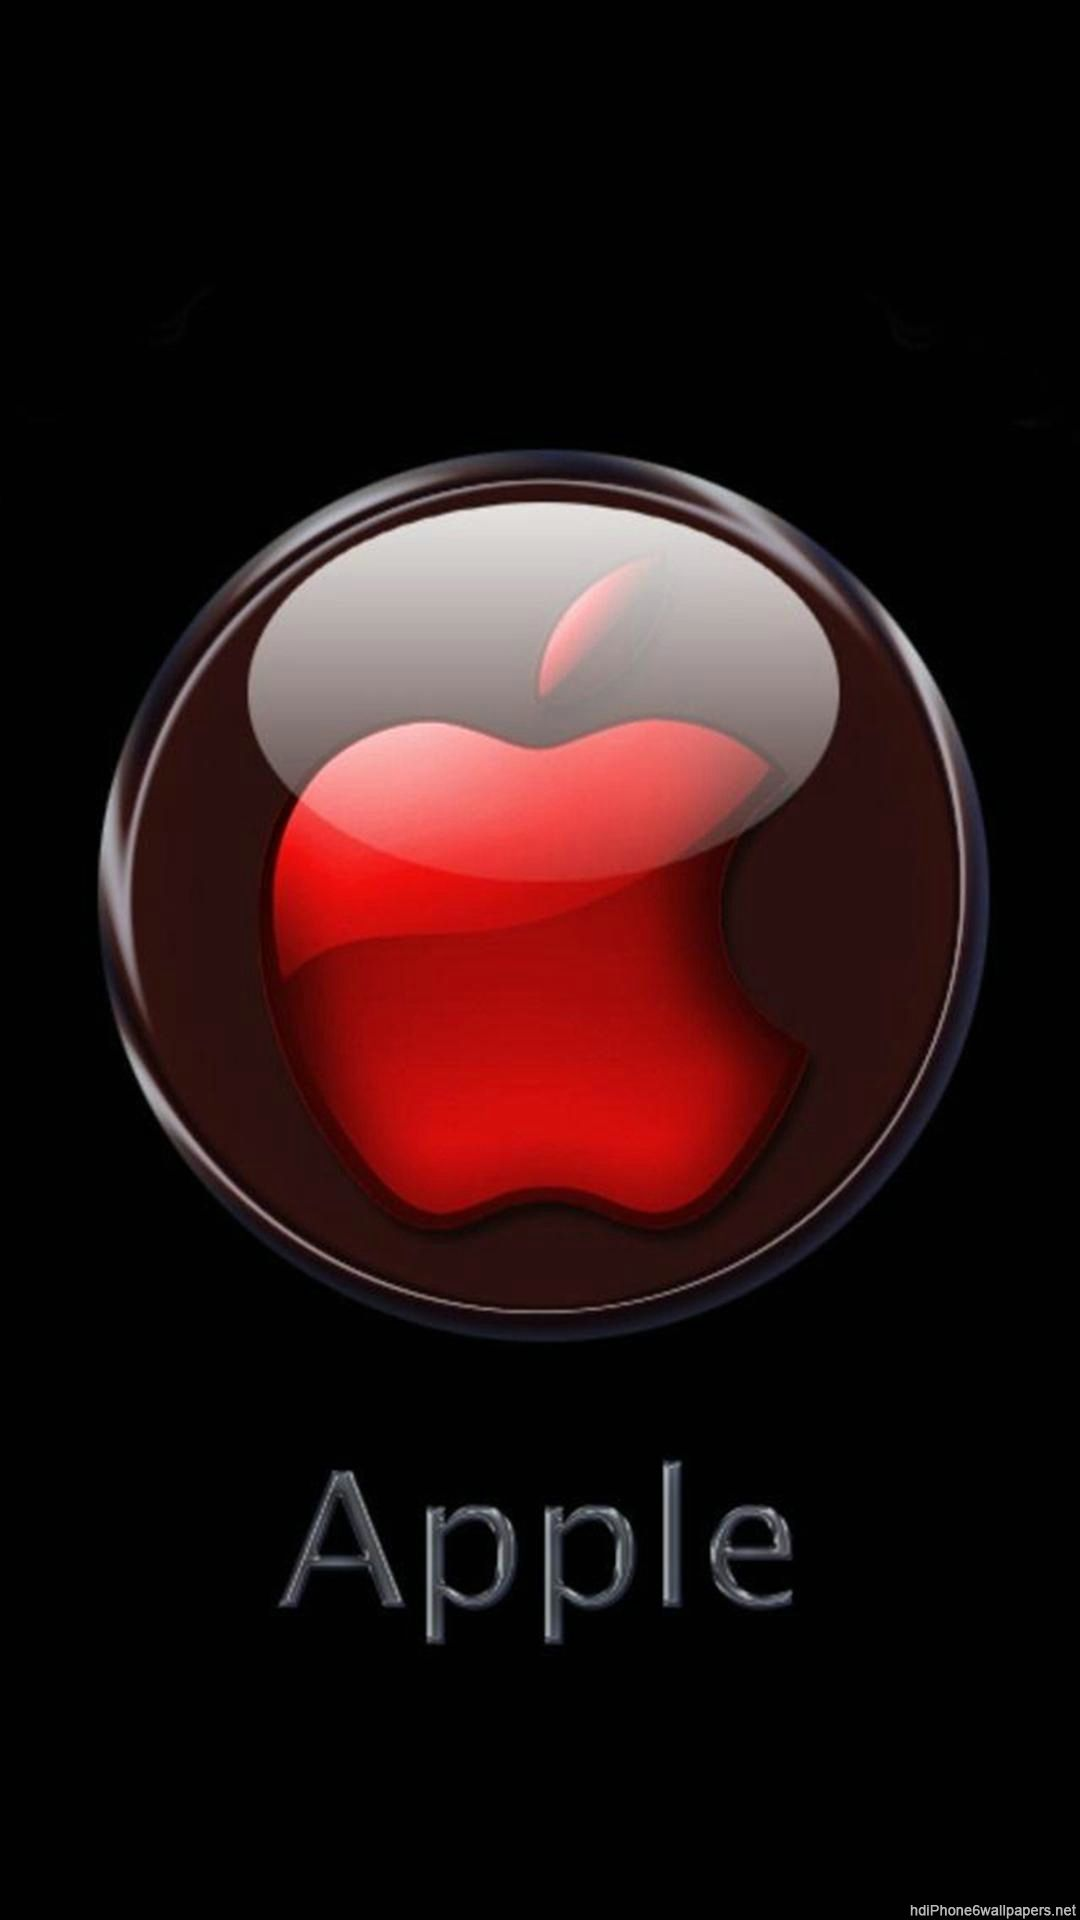 iPhone Retro Apple Wallpaper Bing images Apple Love HD